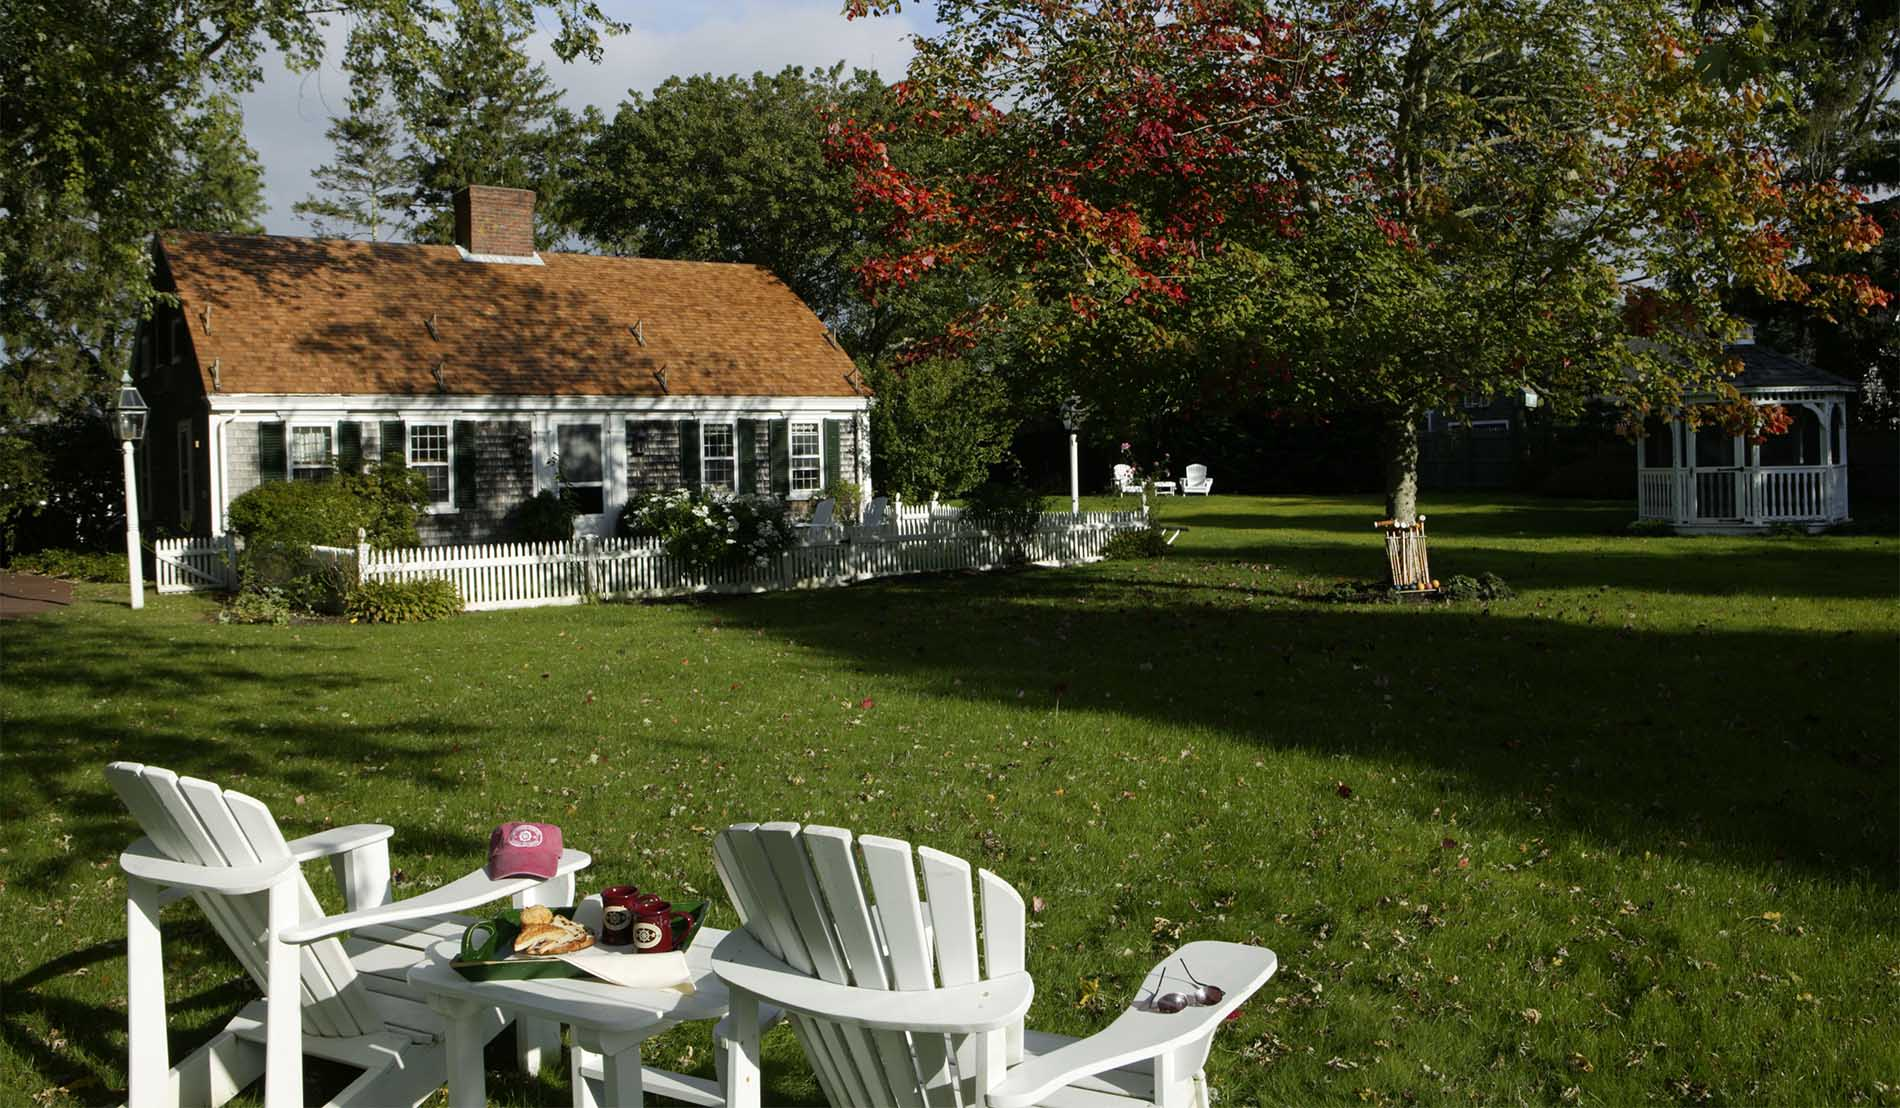 Exterior view of Captains Cottage with white Adirondack chairs and gazebo